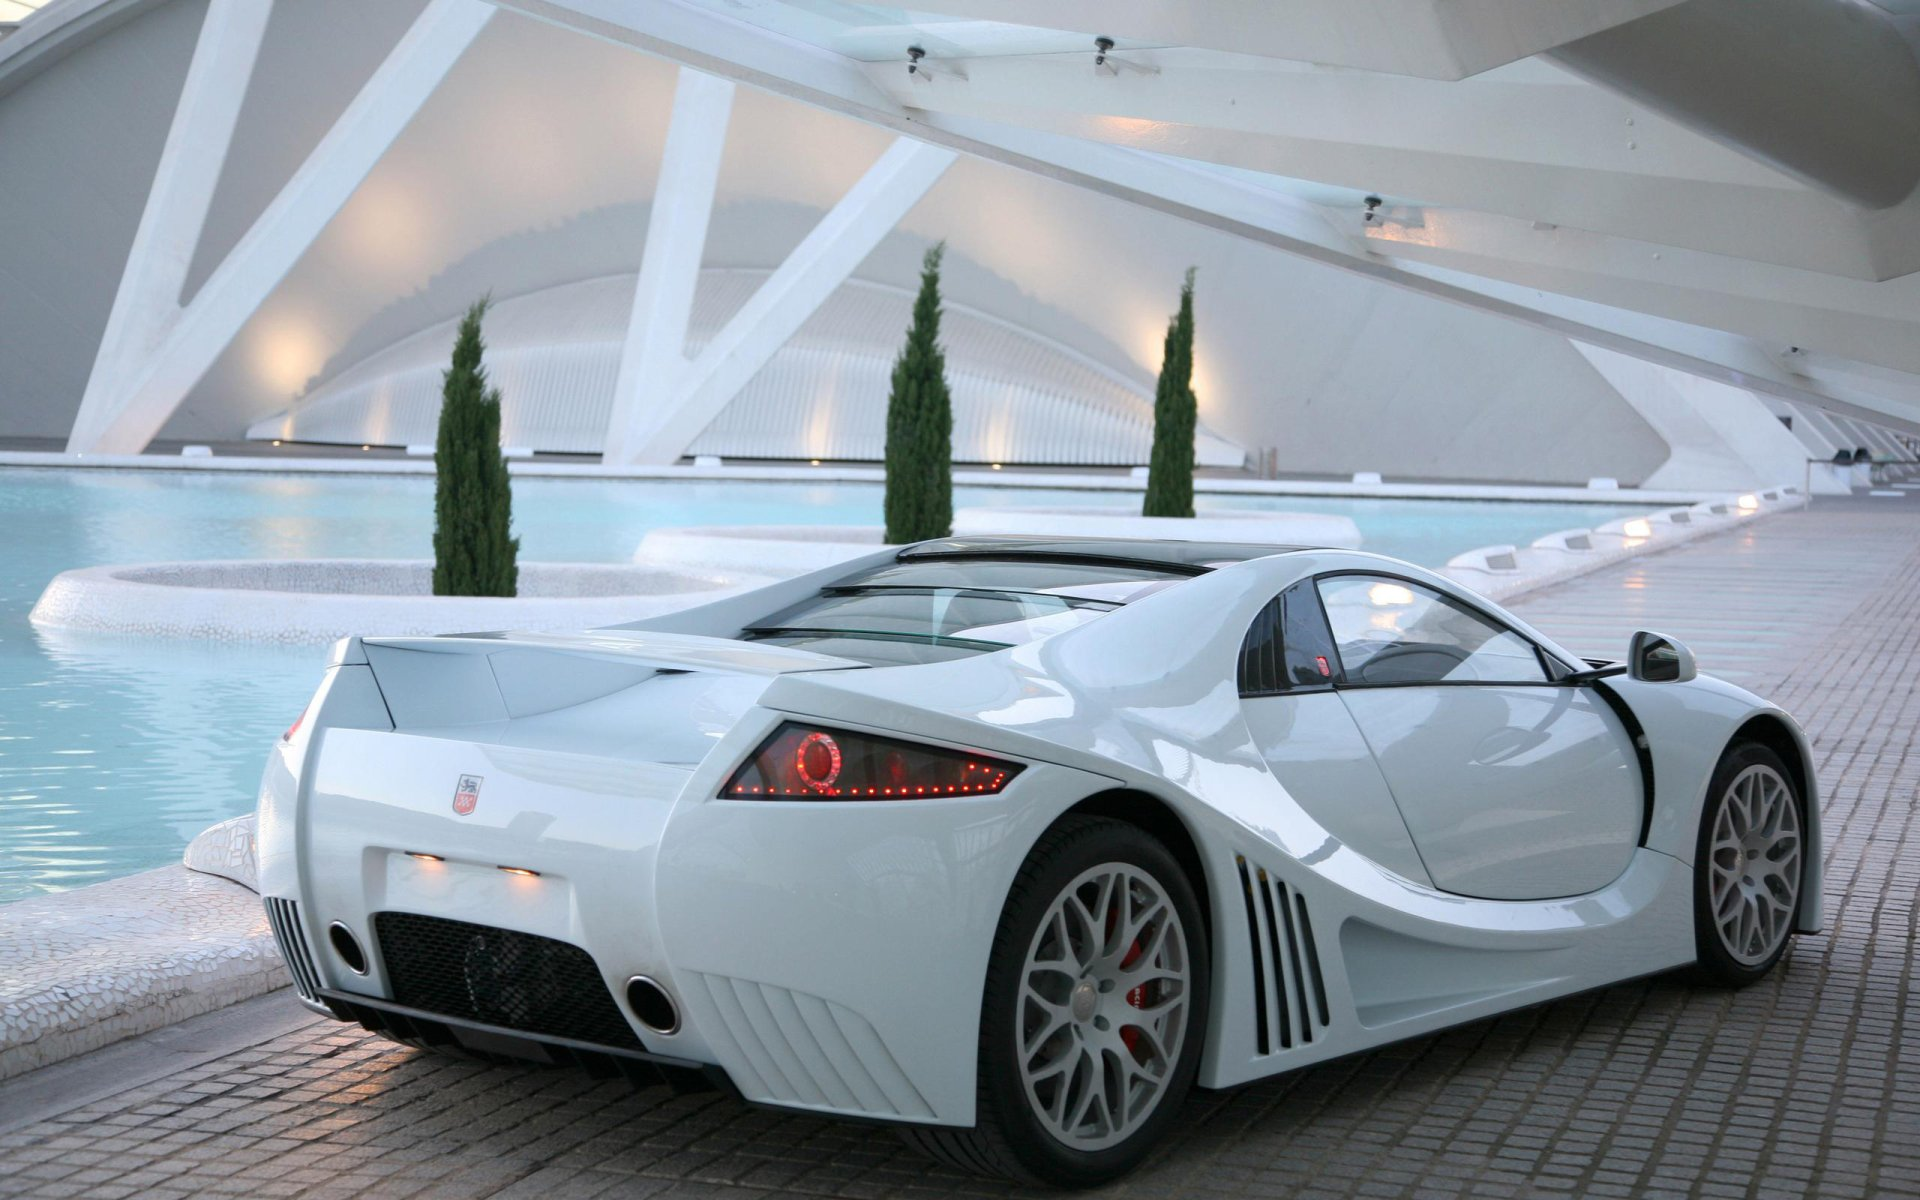 White Cool Cars Wallpapers for Desktop - MagTemplates